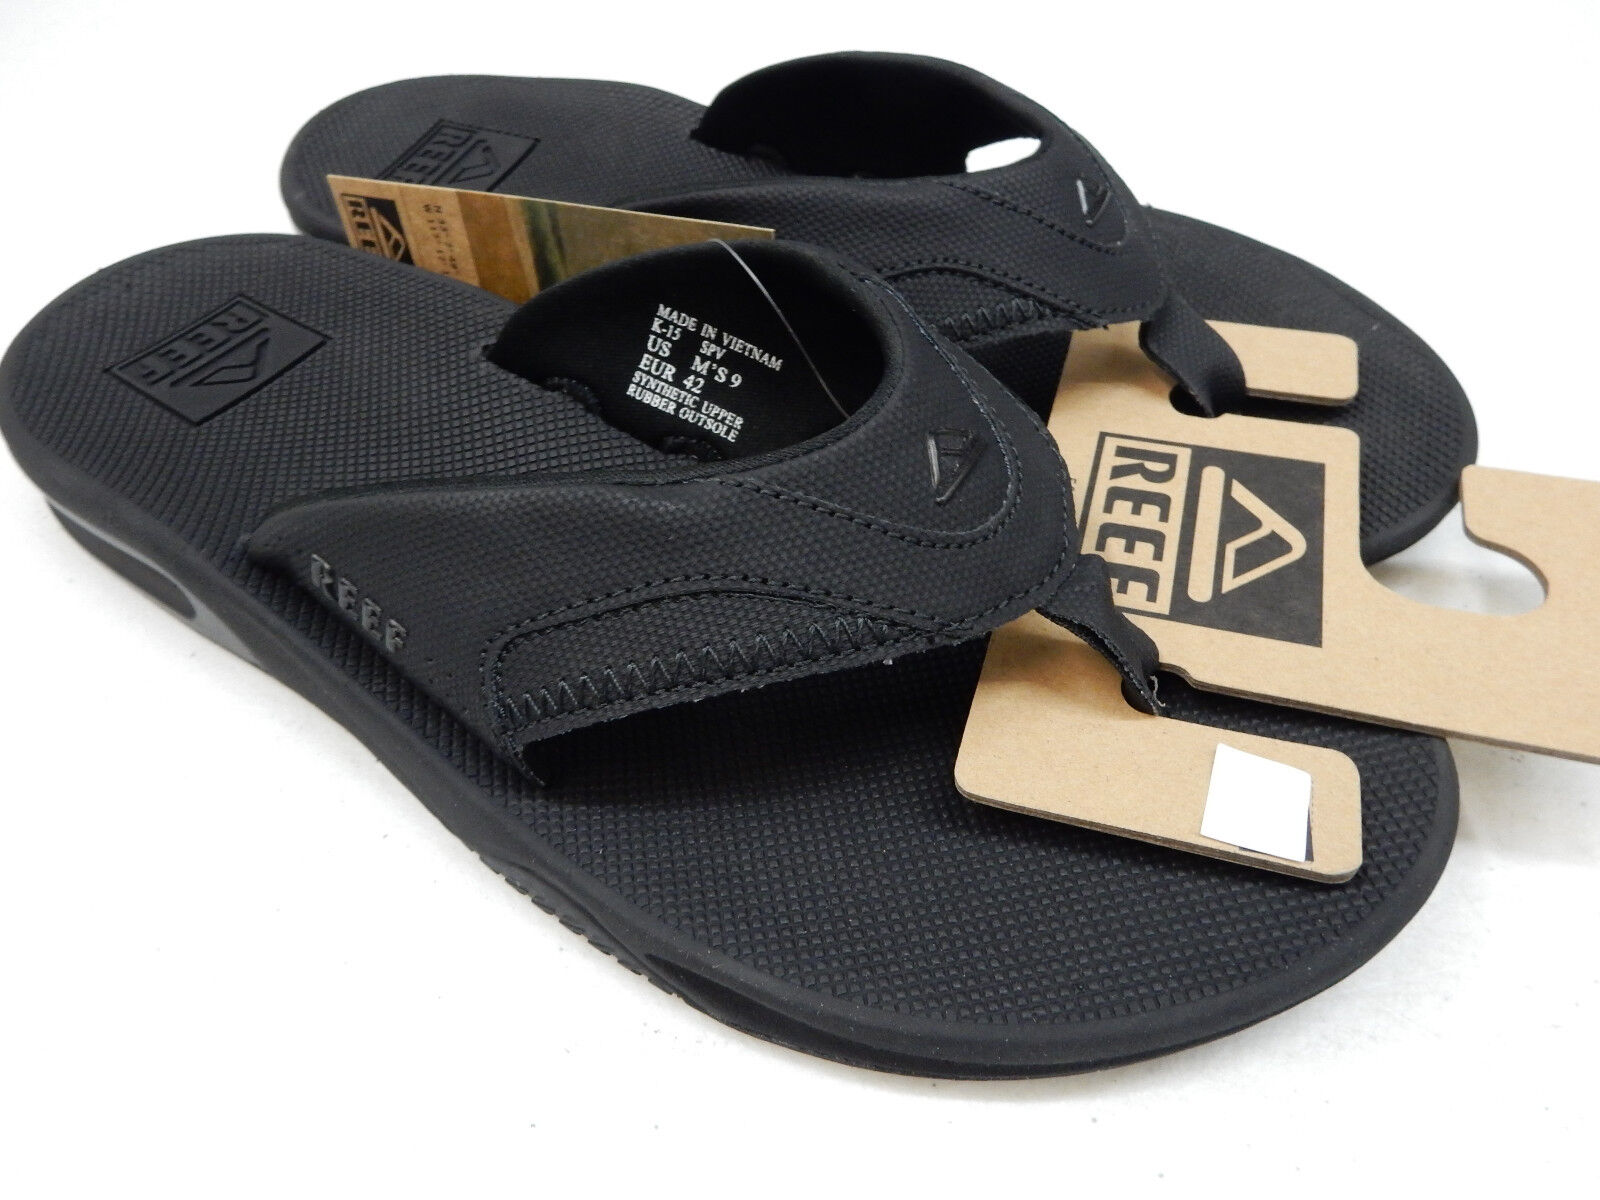 16396a2179e6 Reef Fanning Sandals Rf002415 Murdered Mens US Size 13 UK 12 for ...